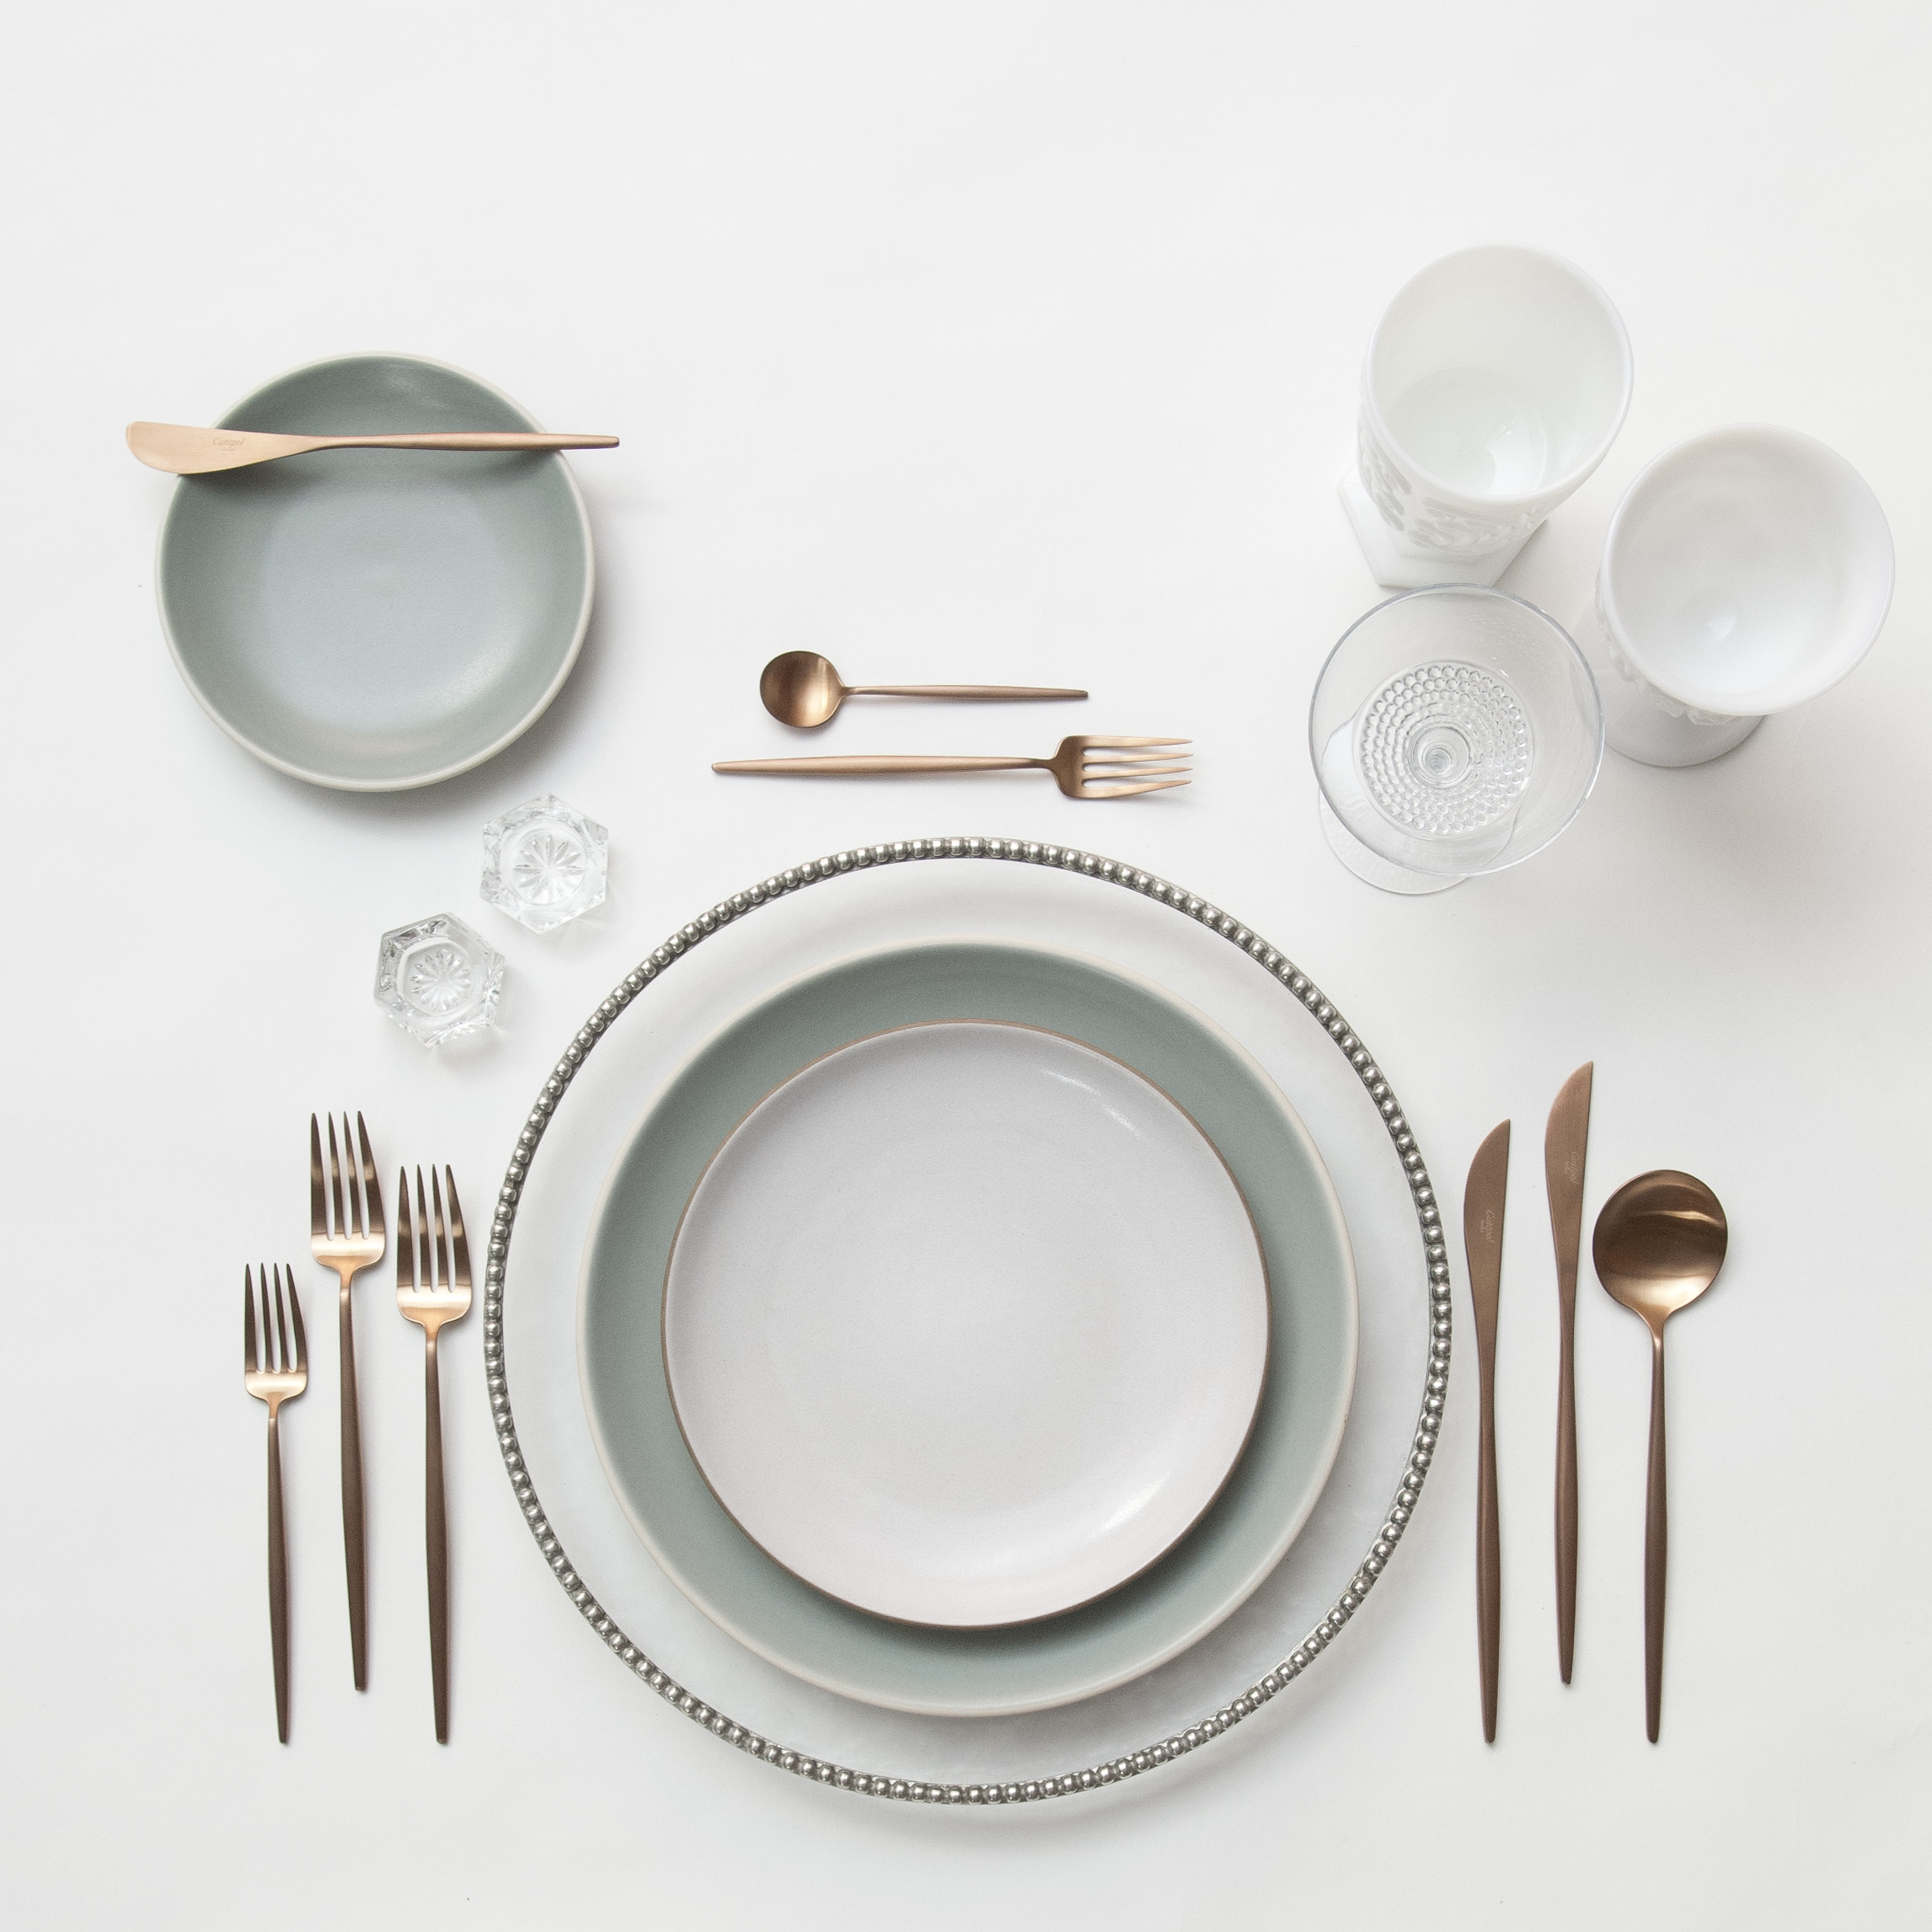 RENT: Pavé Glass Chargers in Pewter + Heath Ceramics in Mist/Opaque White + Moon Flatware in Brushed Rose Gold + Milk Glass Vintage Goblets + Vintage Champagne Coupes + Antique Crystal Salt Cellars  SHOP: Moon Flatware in Brushed Rose Gold